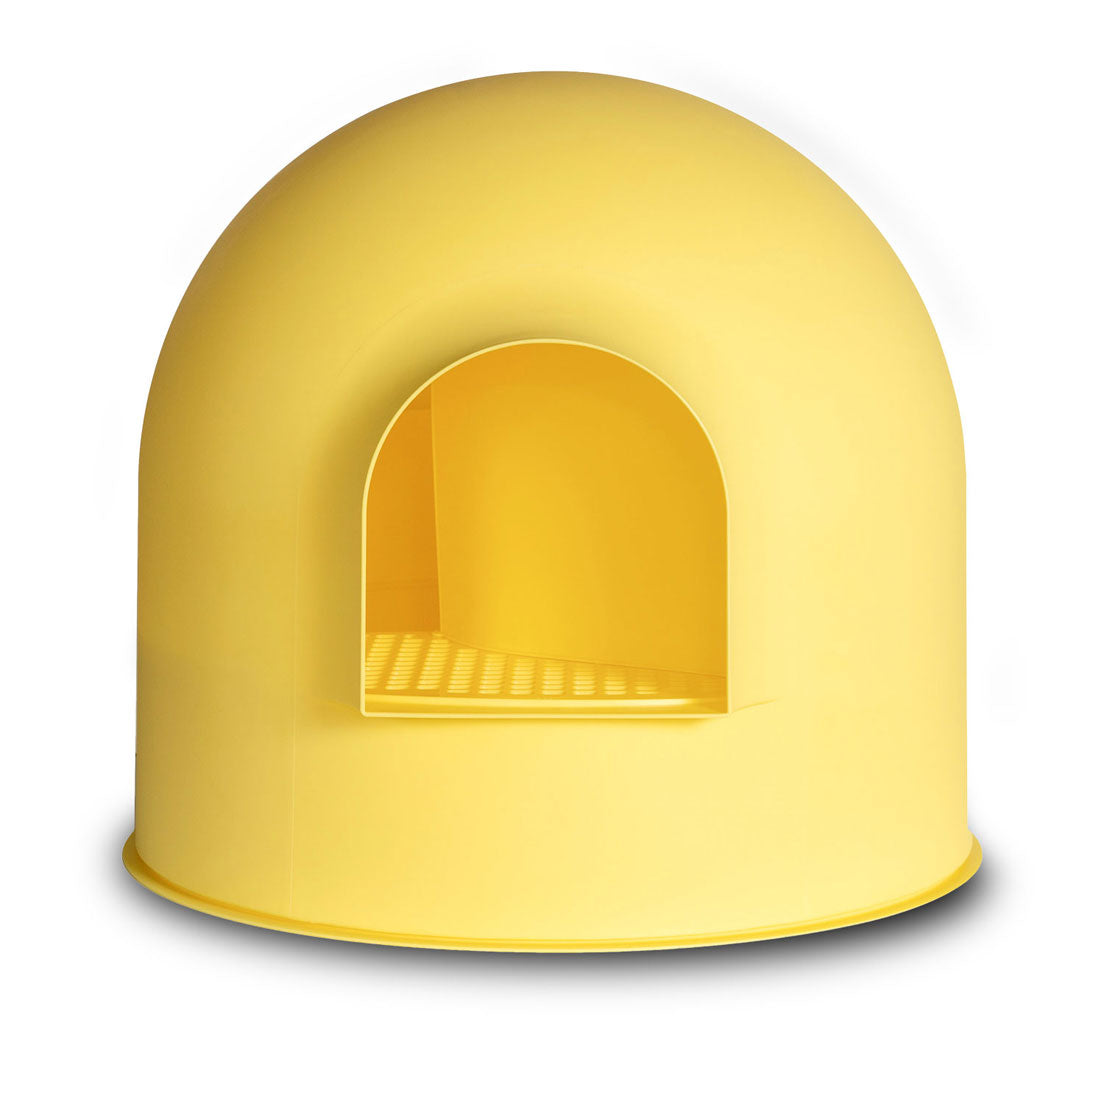 Pidan Igloo Snow House Portable Hooded Cat Toilet Litter Box Tray House with Scoop - yellow